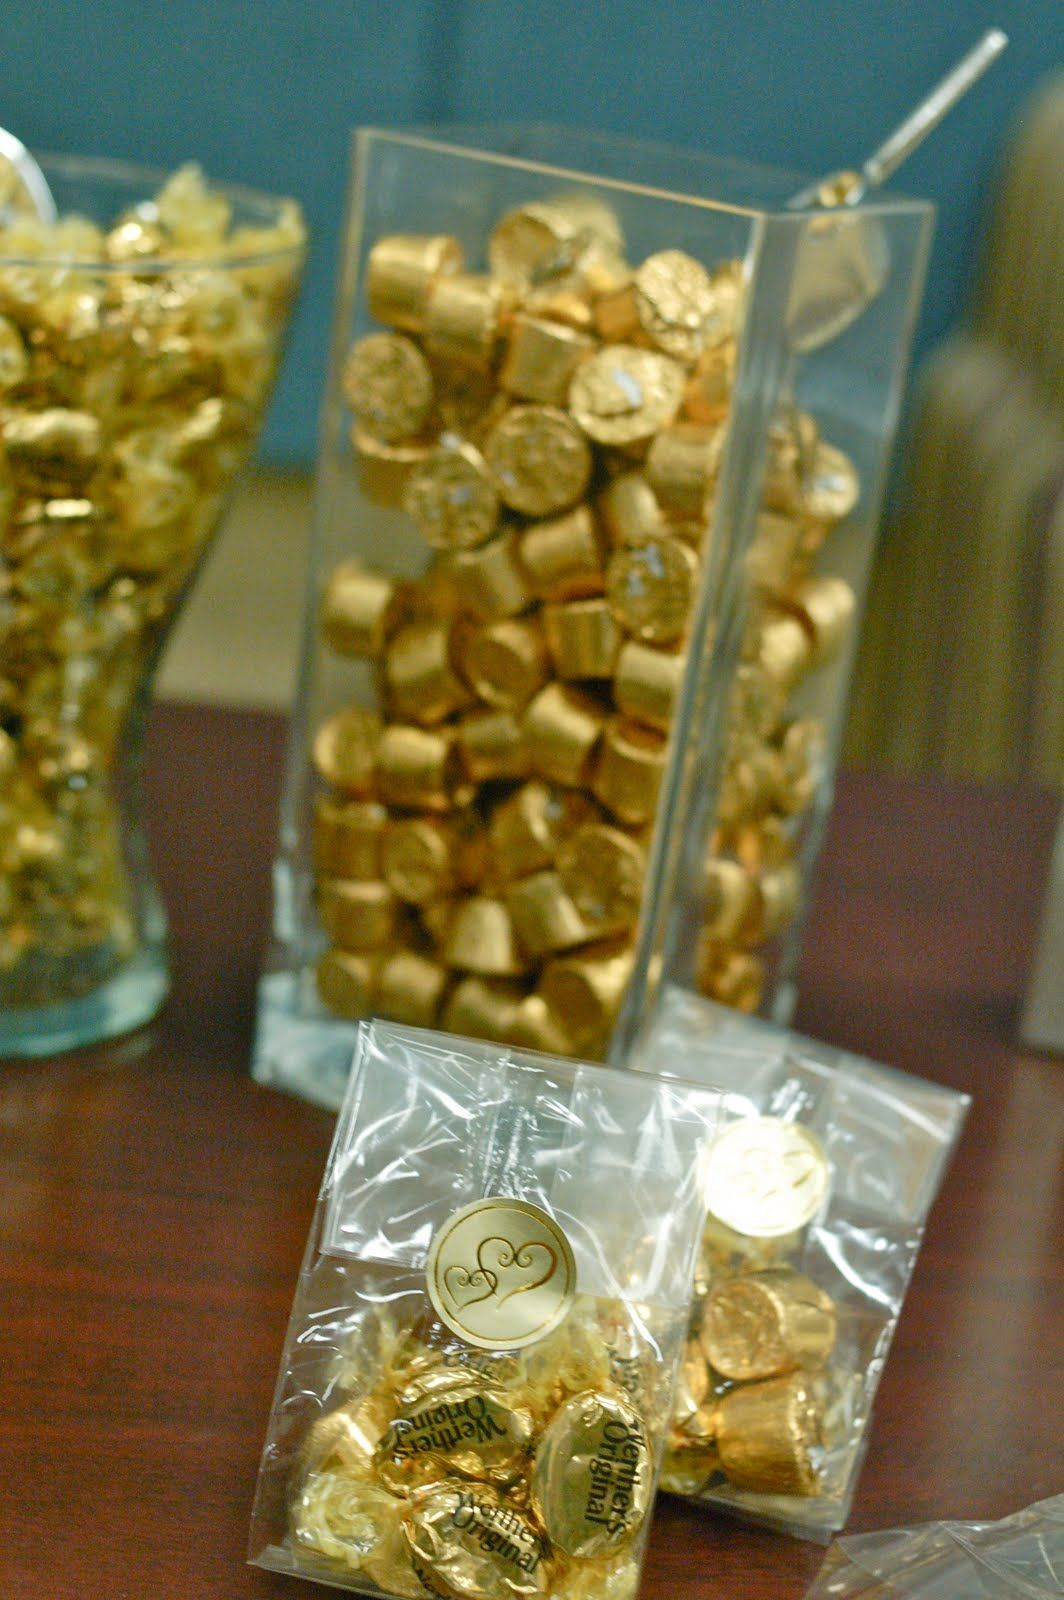 Decoration ideas for 50th wedding anniversary celebration  Rolos Werthers Hershey Nuggets Kisses with almonds  Golden